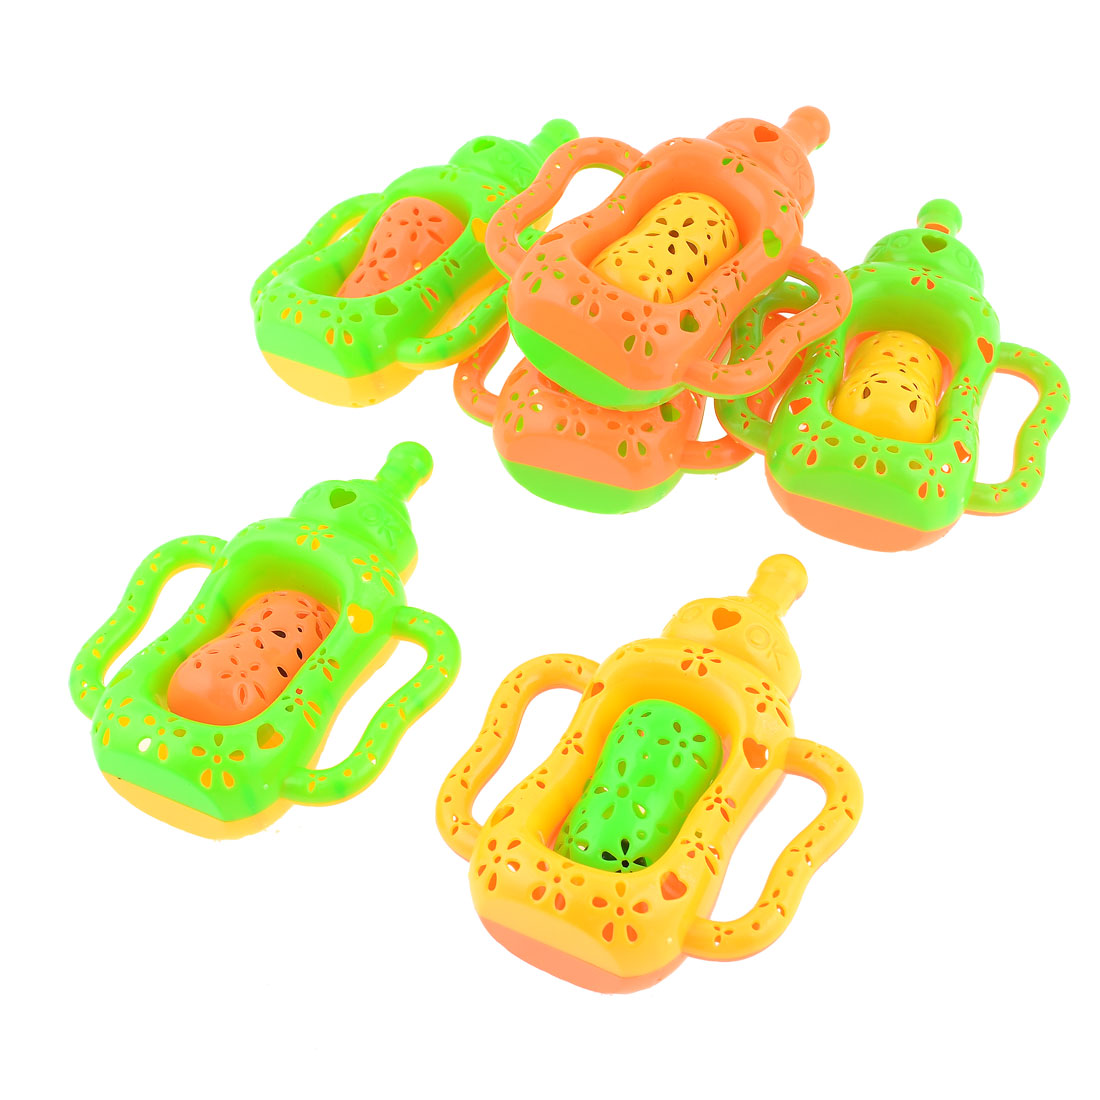 6 PCS Colorful Kettle Shape Flower Hole Desigh Hand Bassinet for Baby